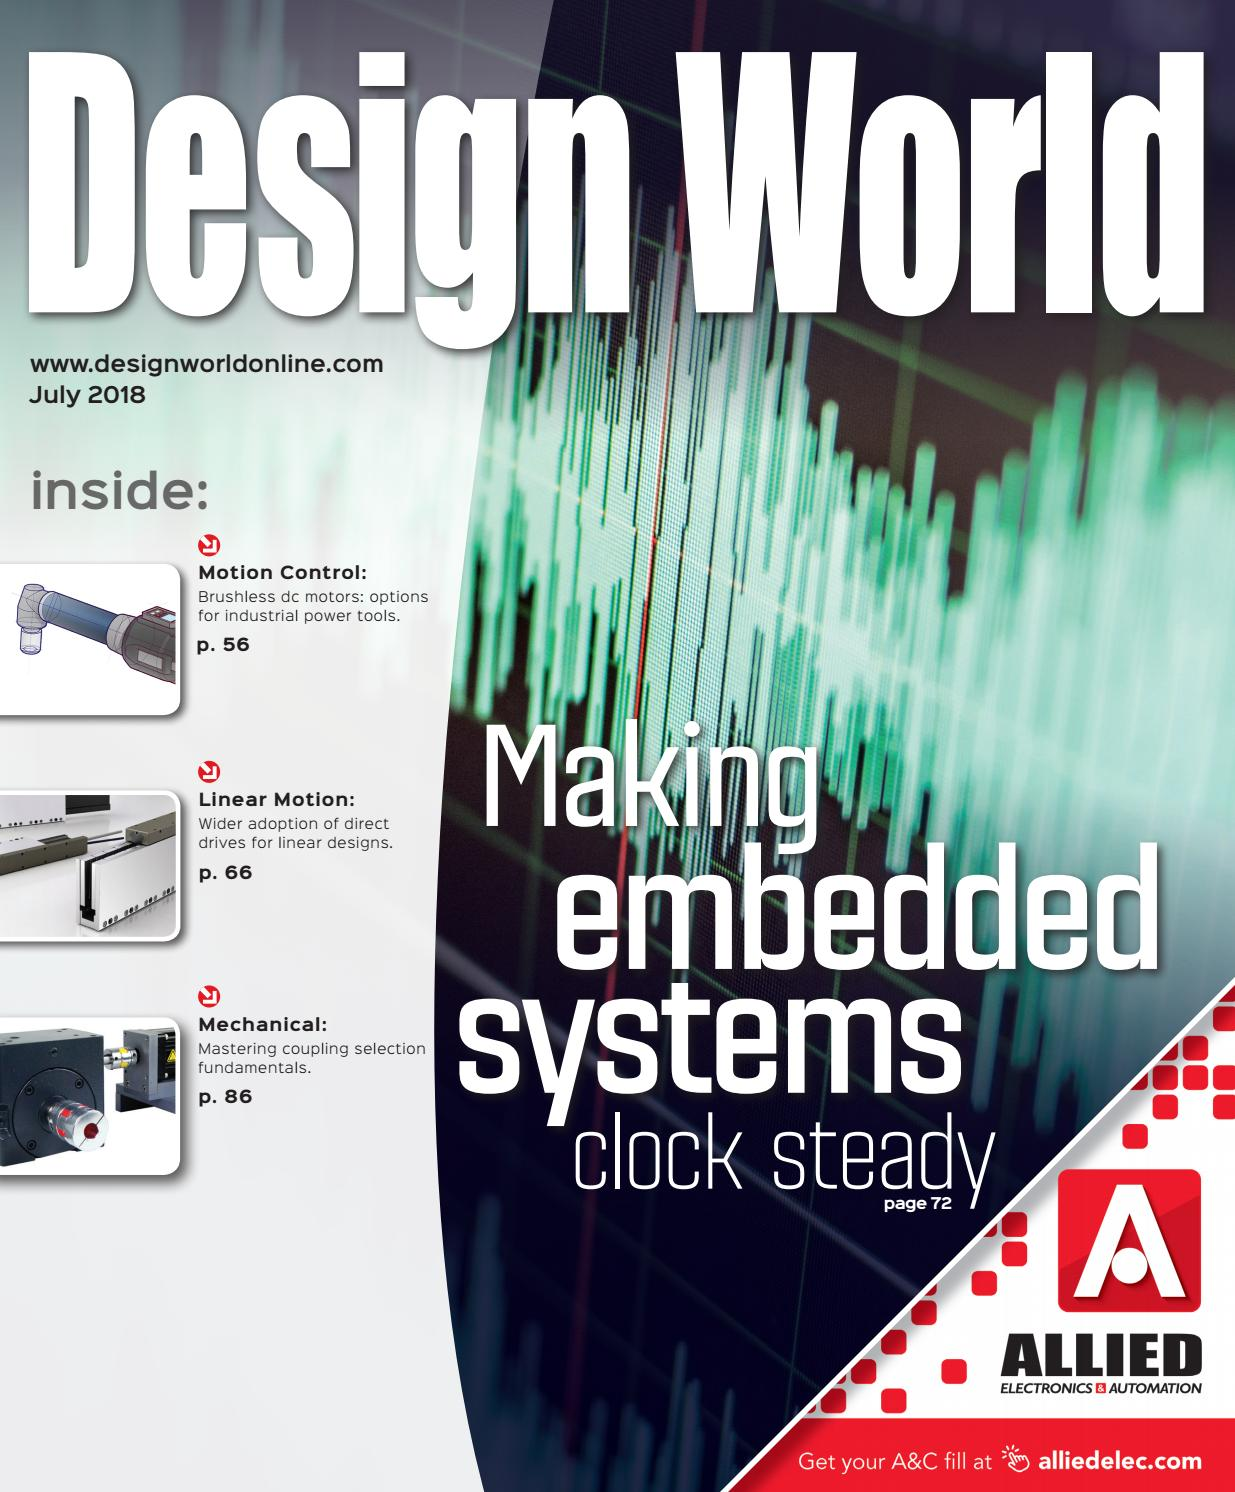 Design World July 2018 By Wtwh Media Llc Issuu Color Code Furthermore 4 Way Switches As Well Vfd Control Circuit